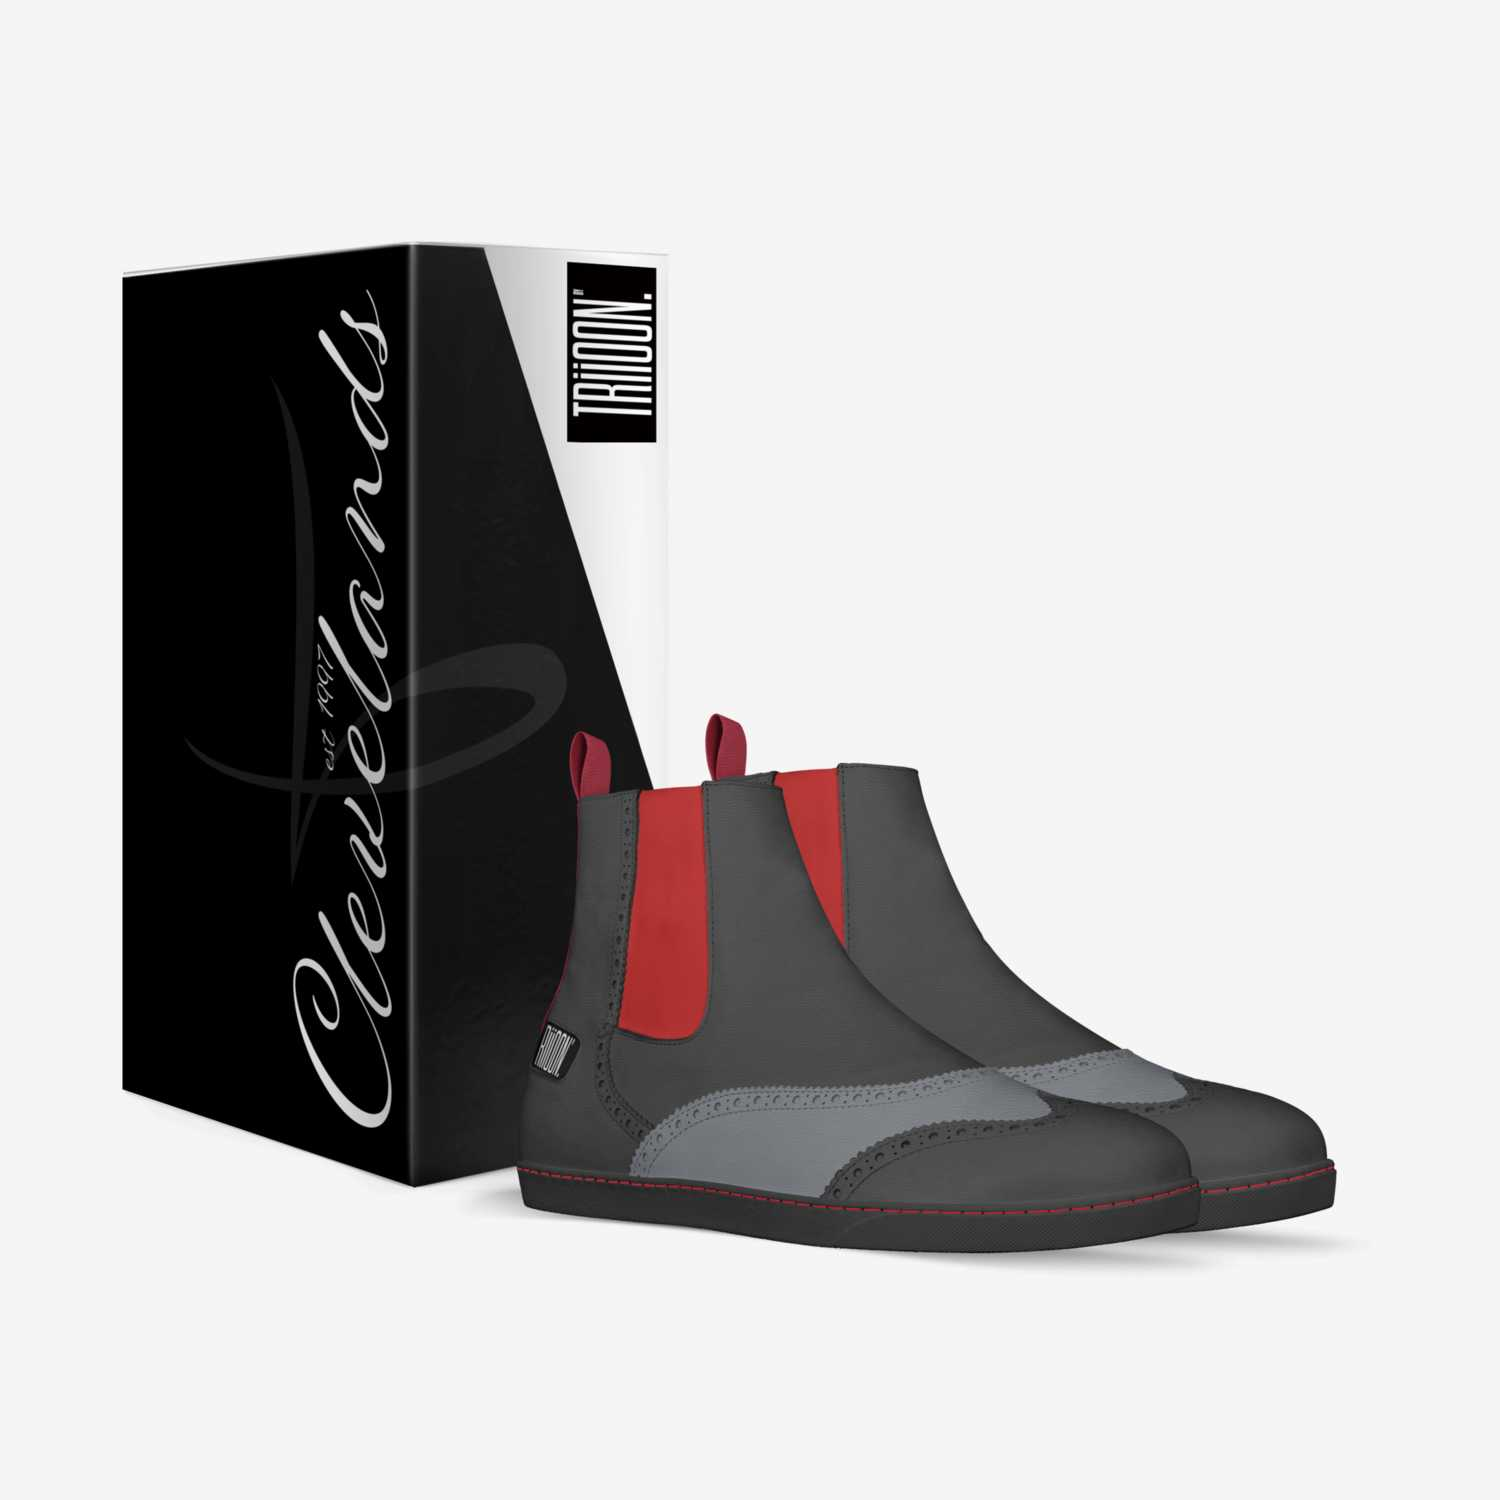 CLEVELANDS custom made in Italy shoes by Patrick Medley | Box view